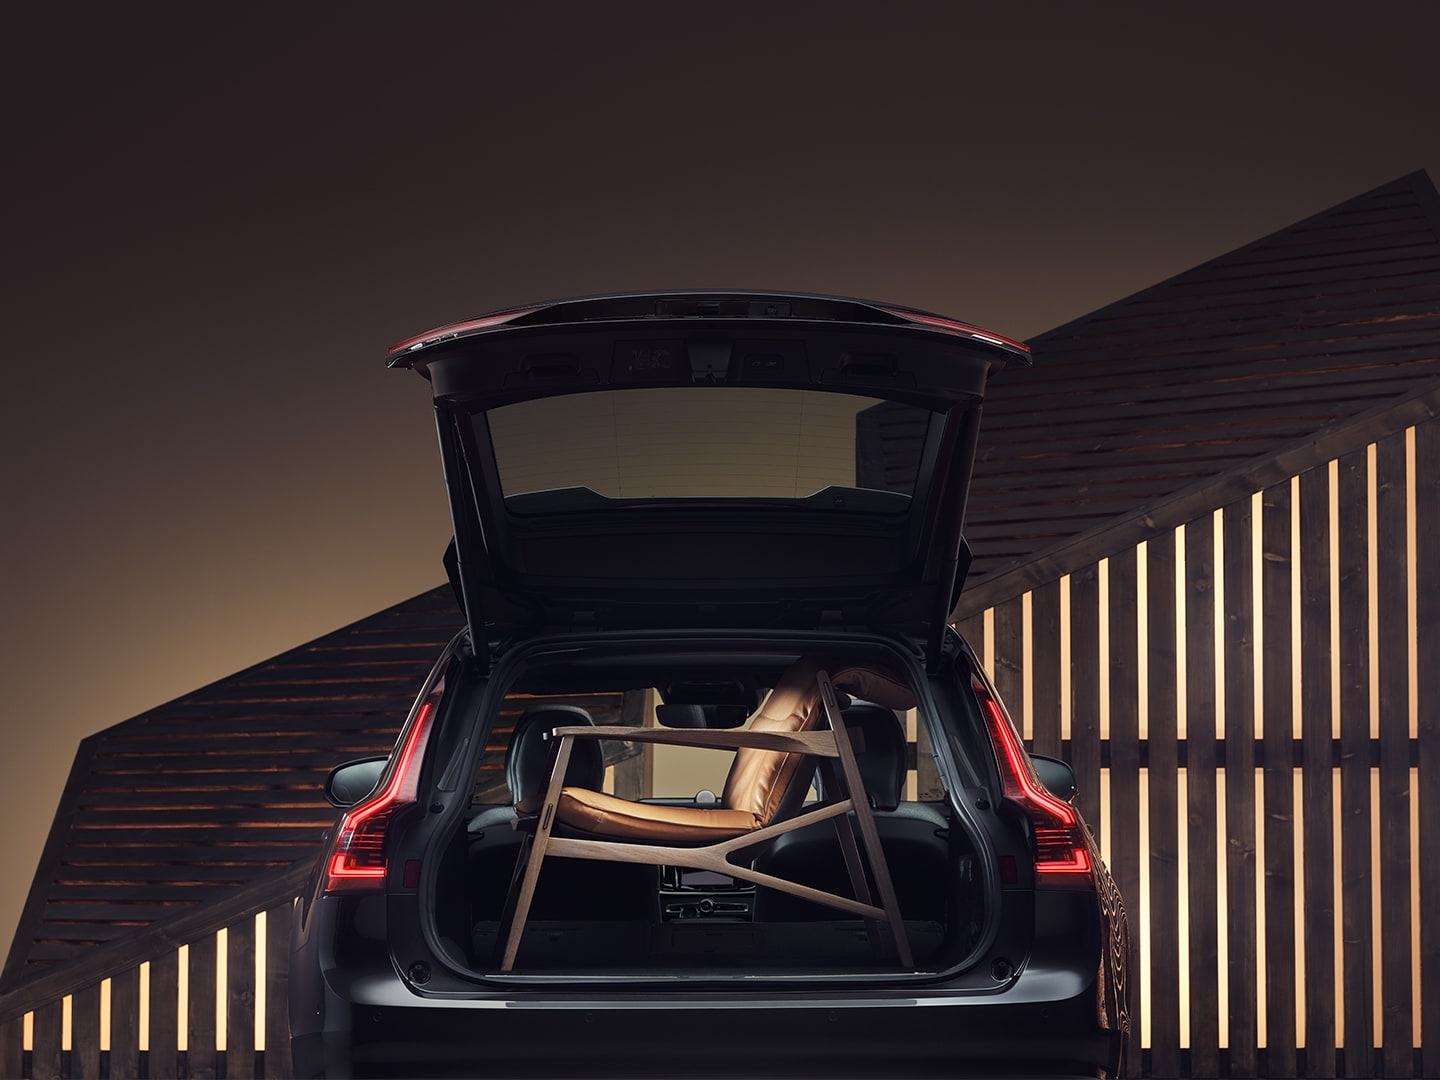 The boot space of a Volvo Wagon is filled up by a brown elegant armchair